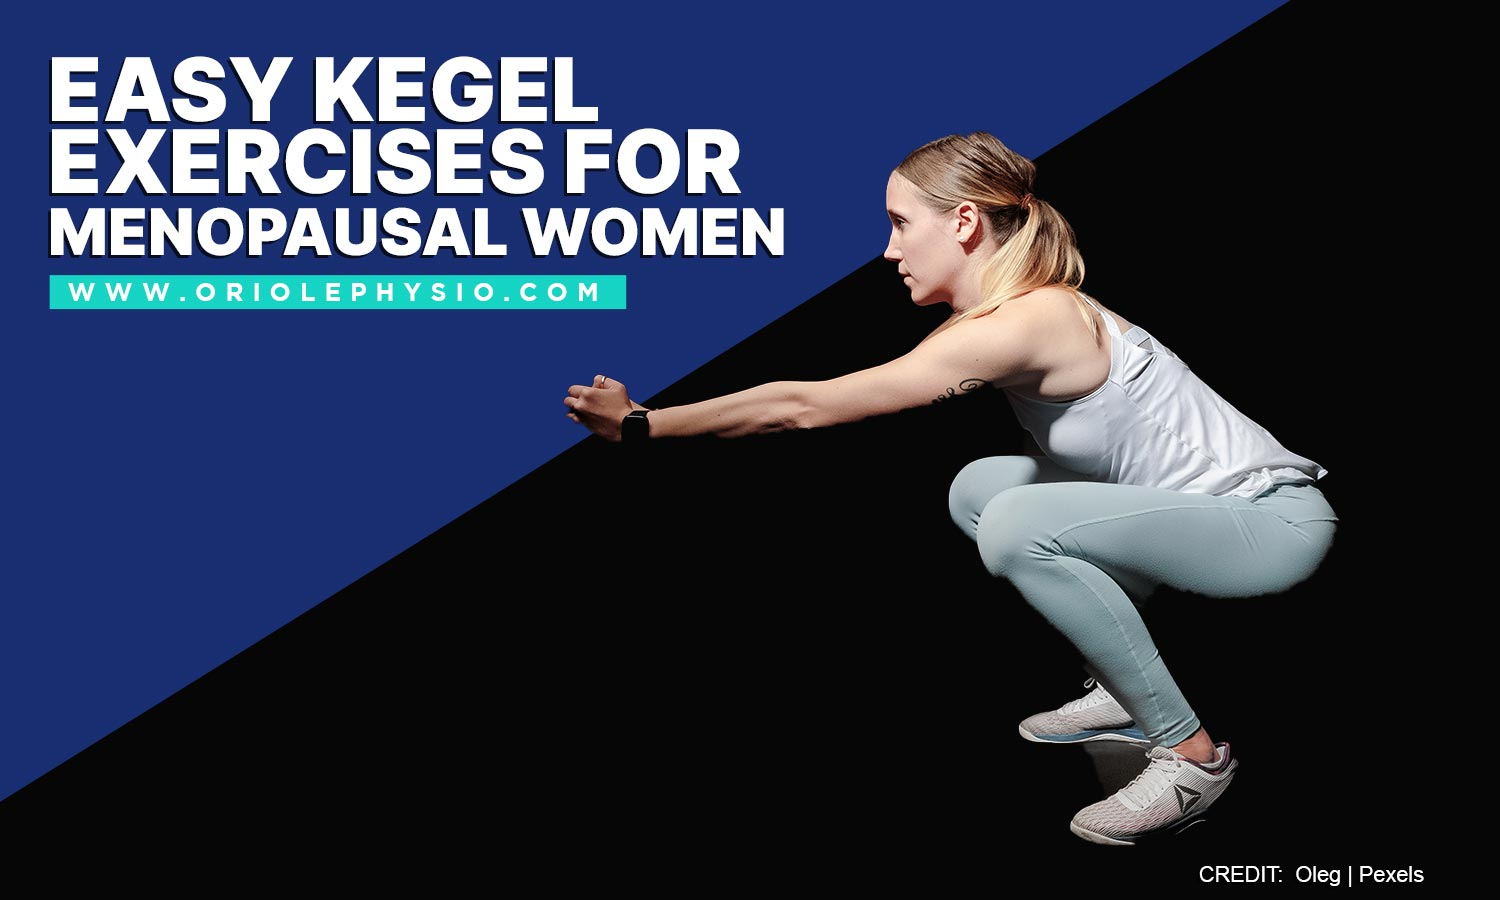 Easy Kegel Exercises for Menopausal Women